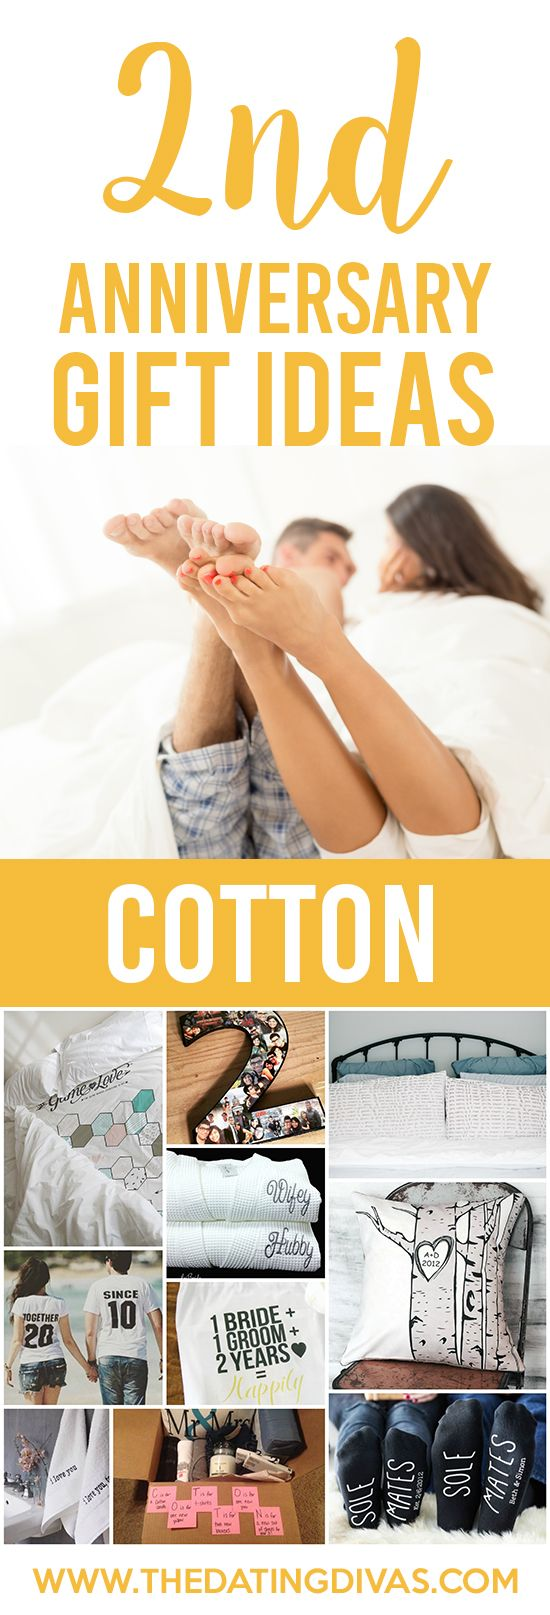 2nd Anniversary Gift Ideas for your COTTON anniversary